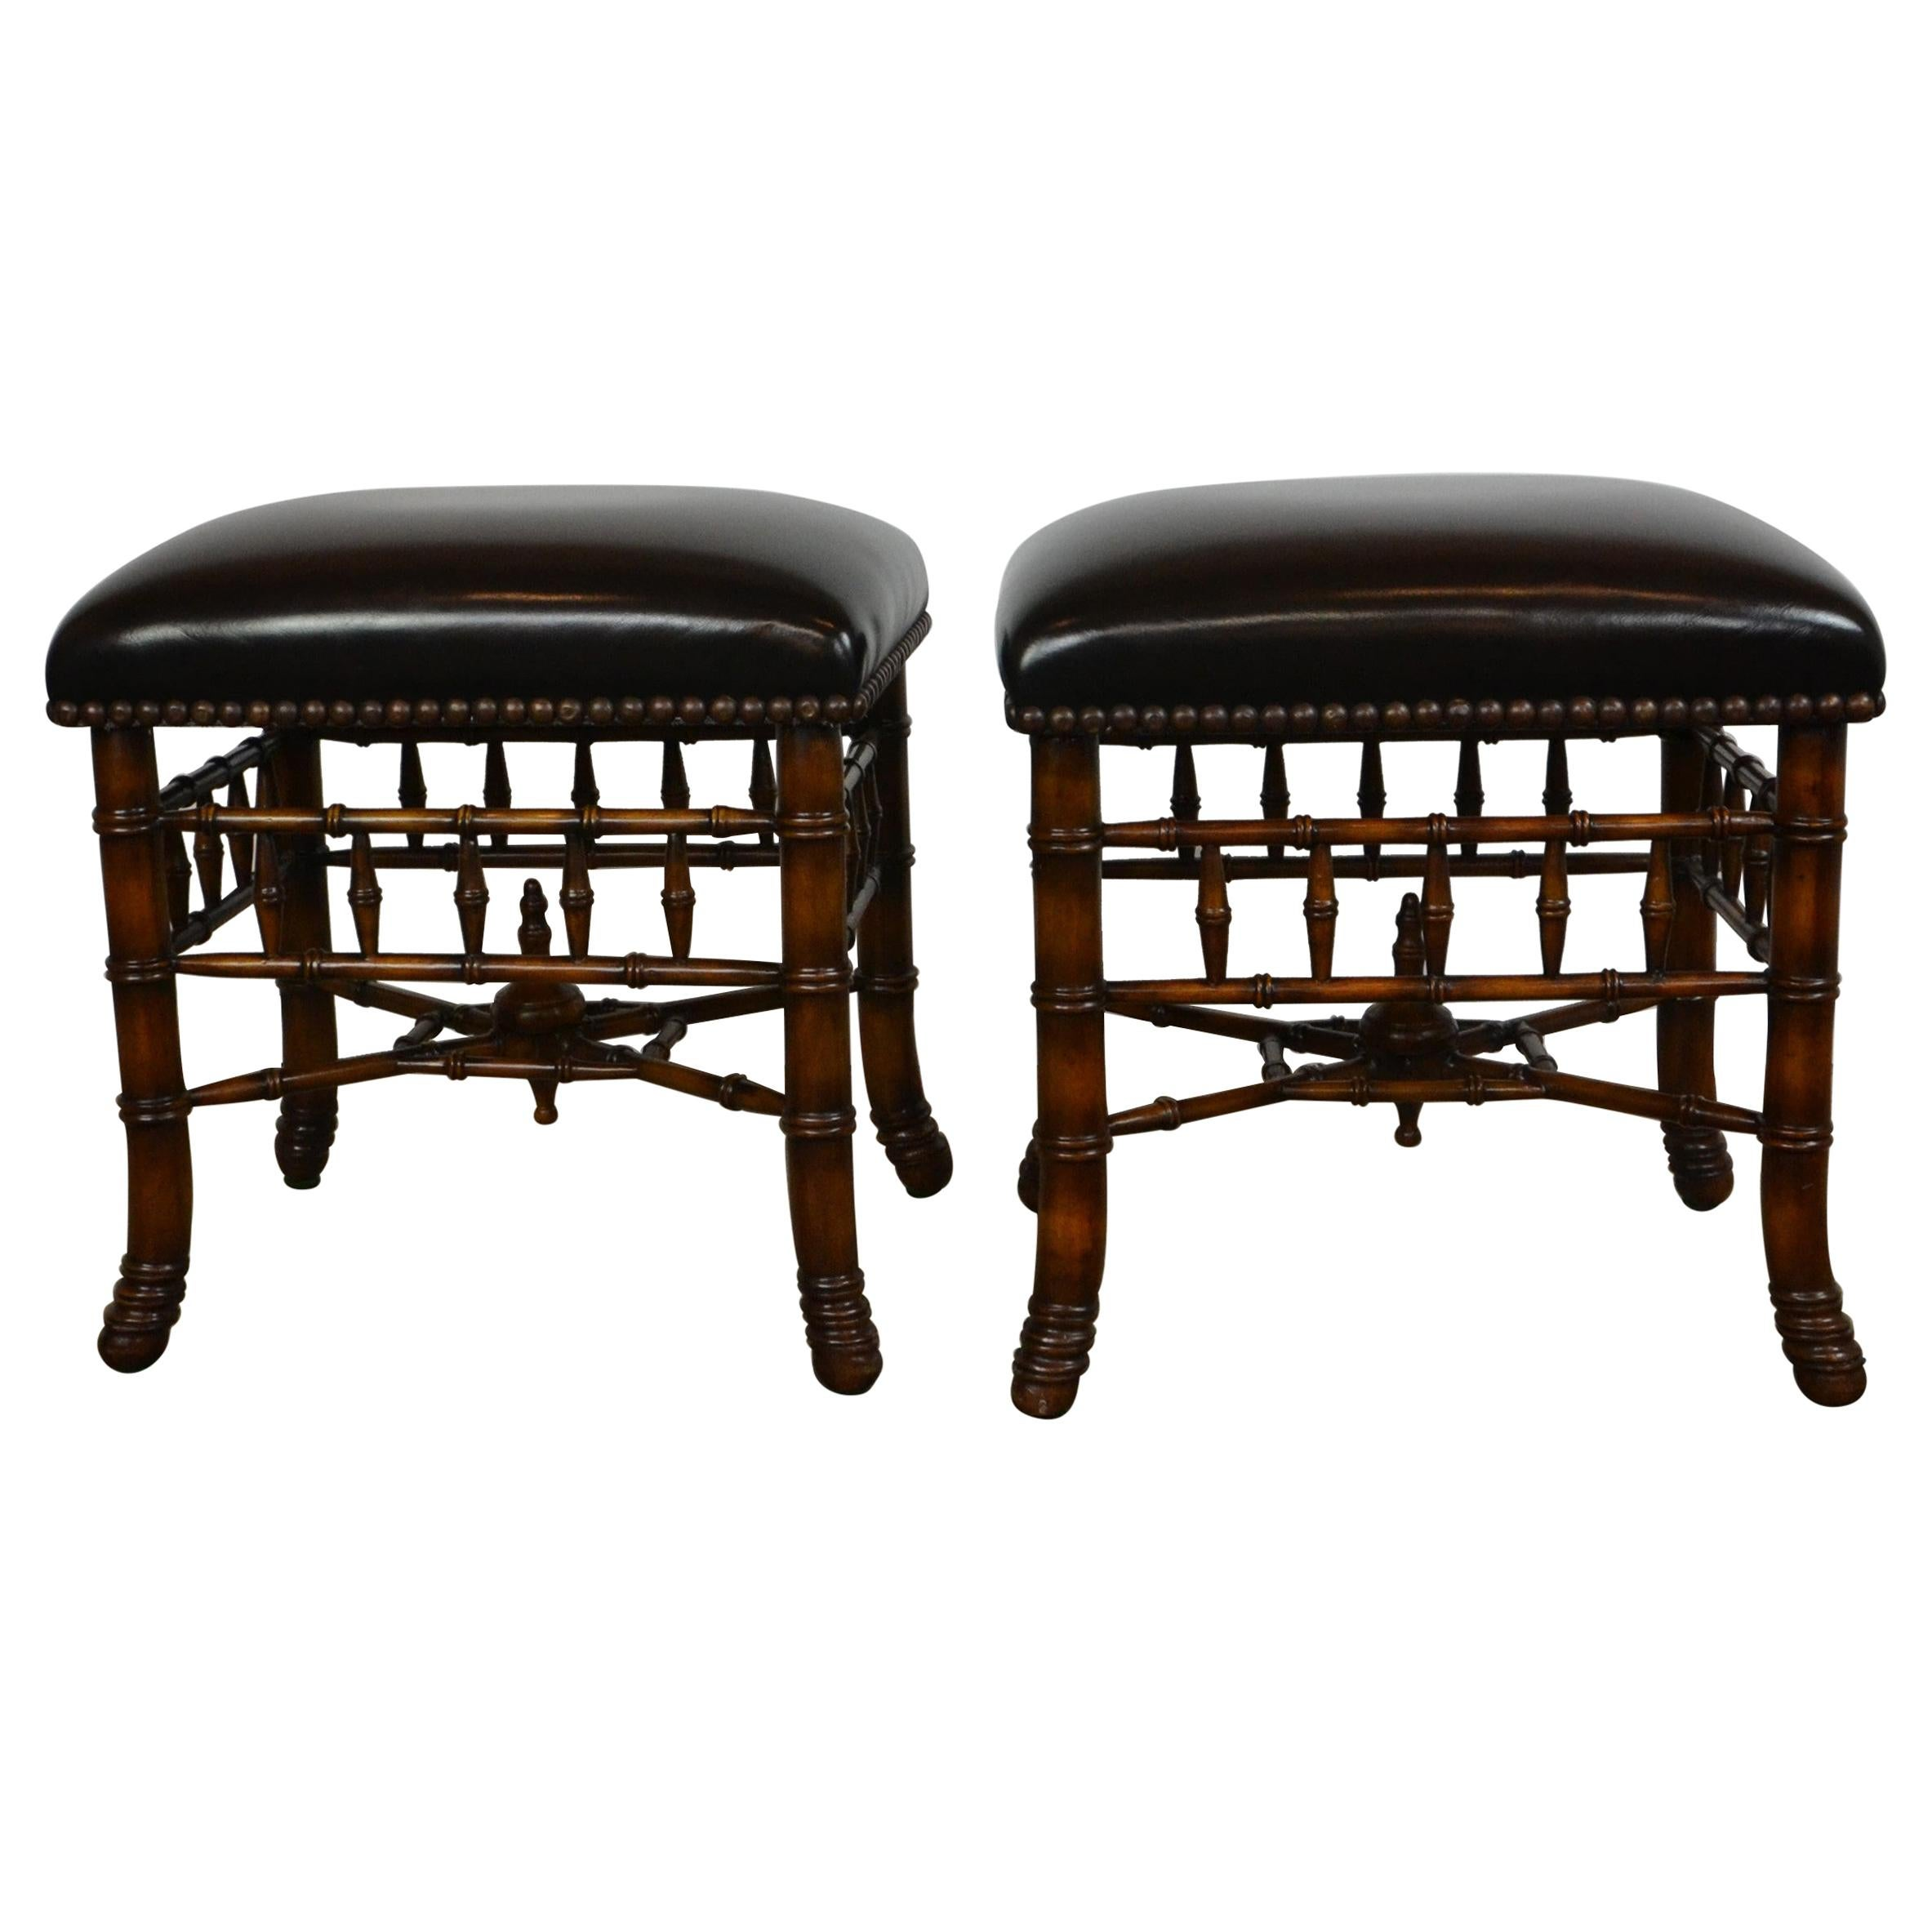 Pair of Theodore Alexander Faux Bamboo Benches / Stools of Top Quality